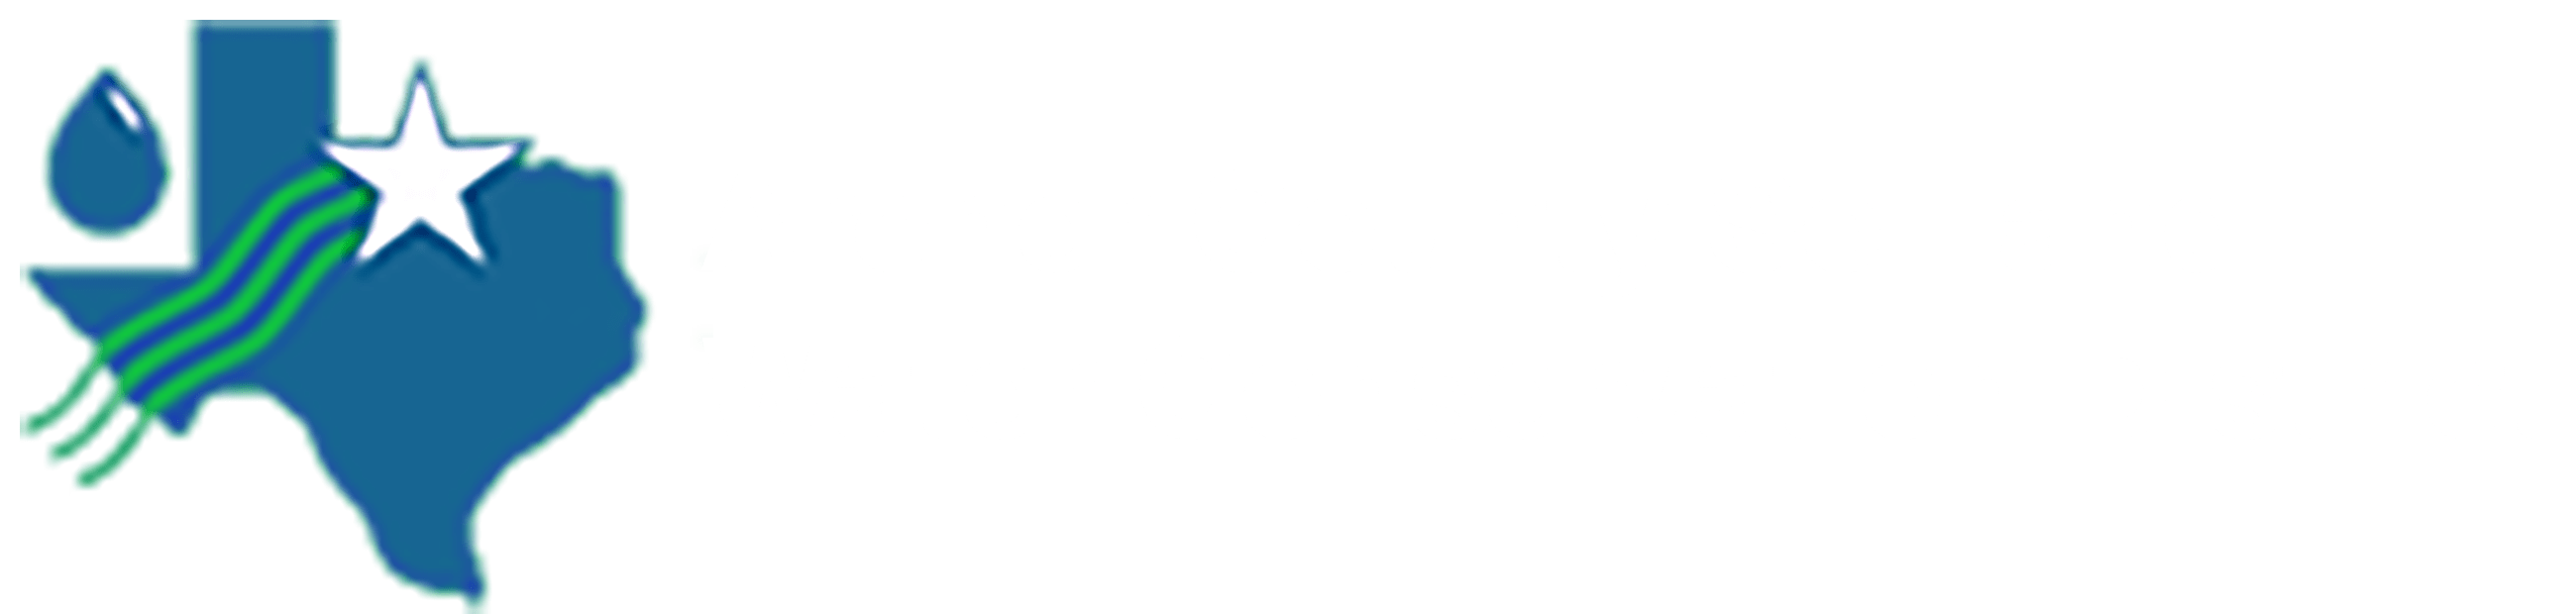 Archer County Soil and Water Conservation District